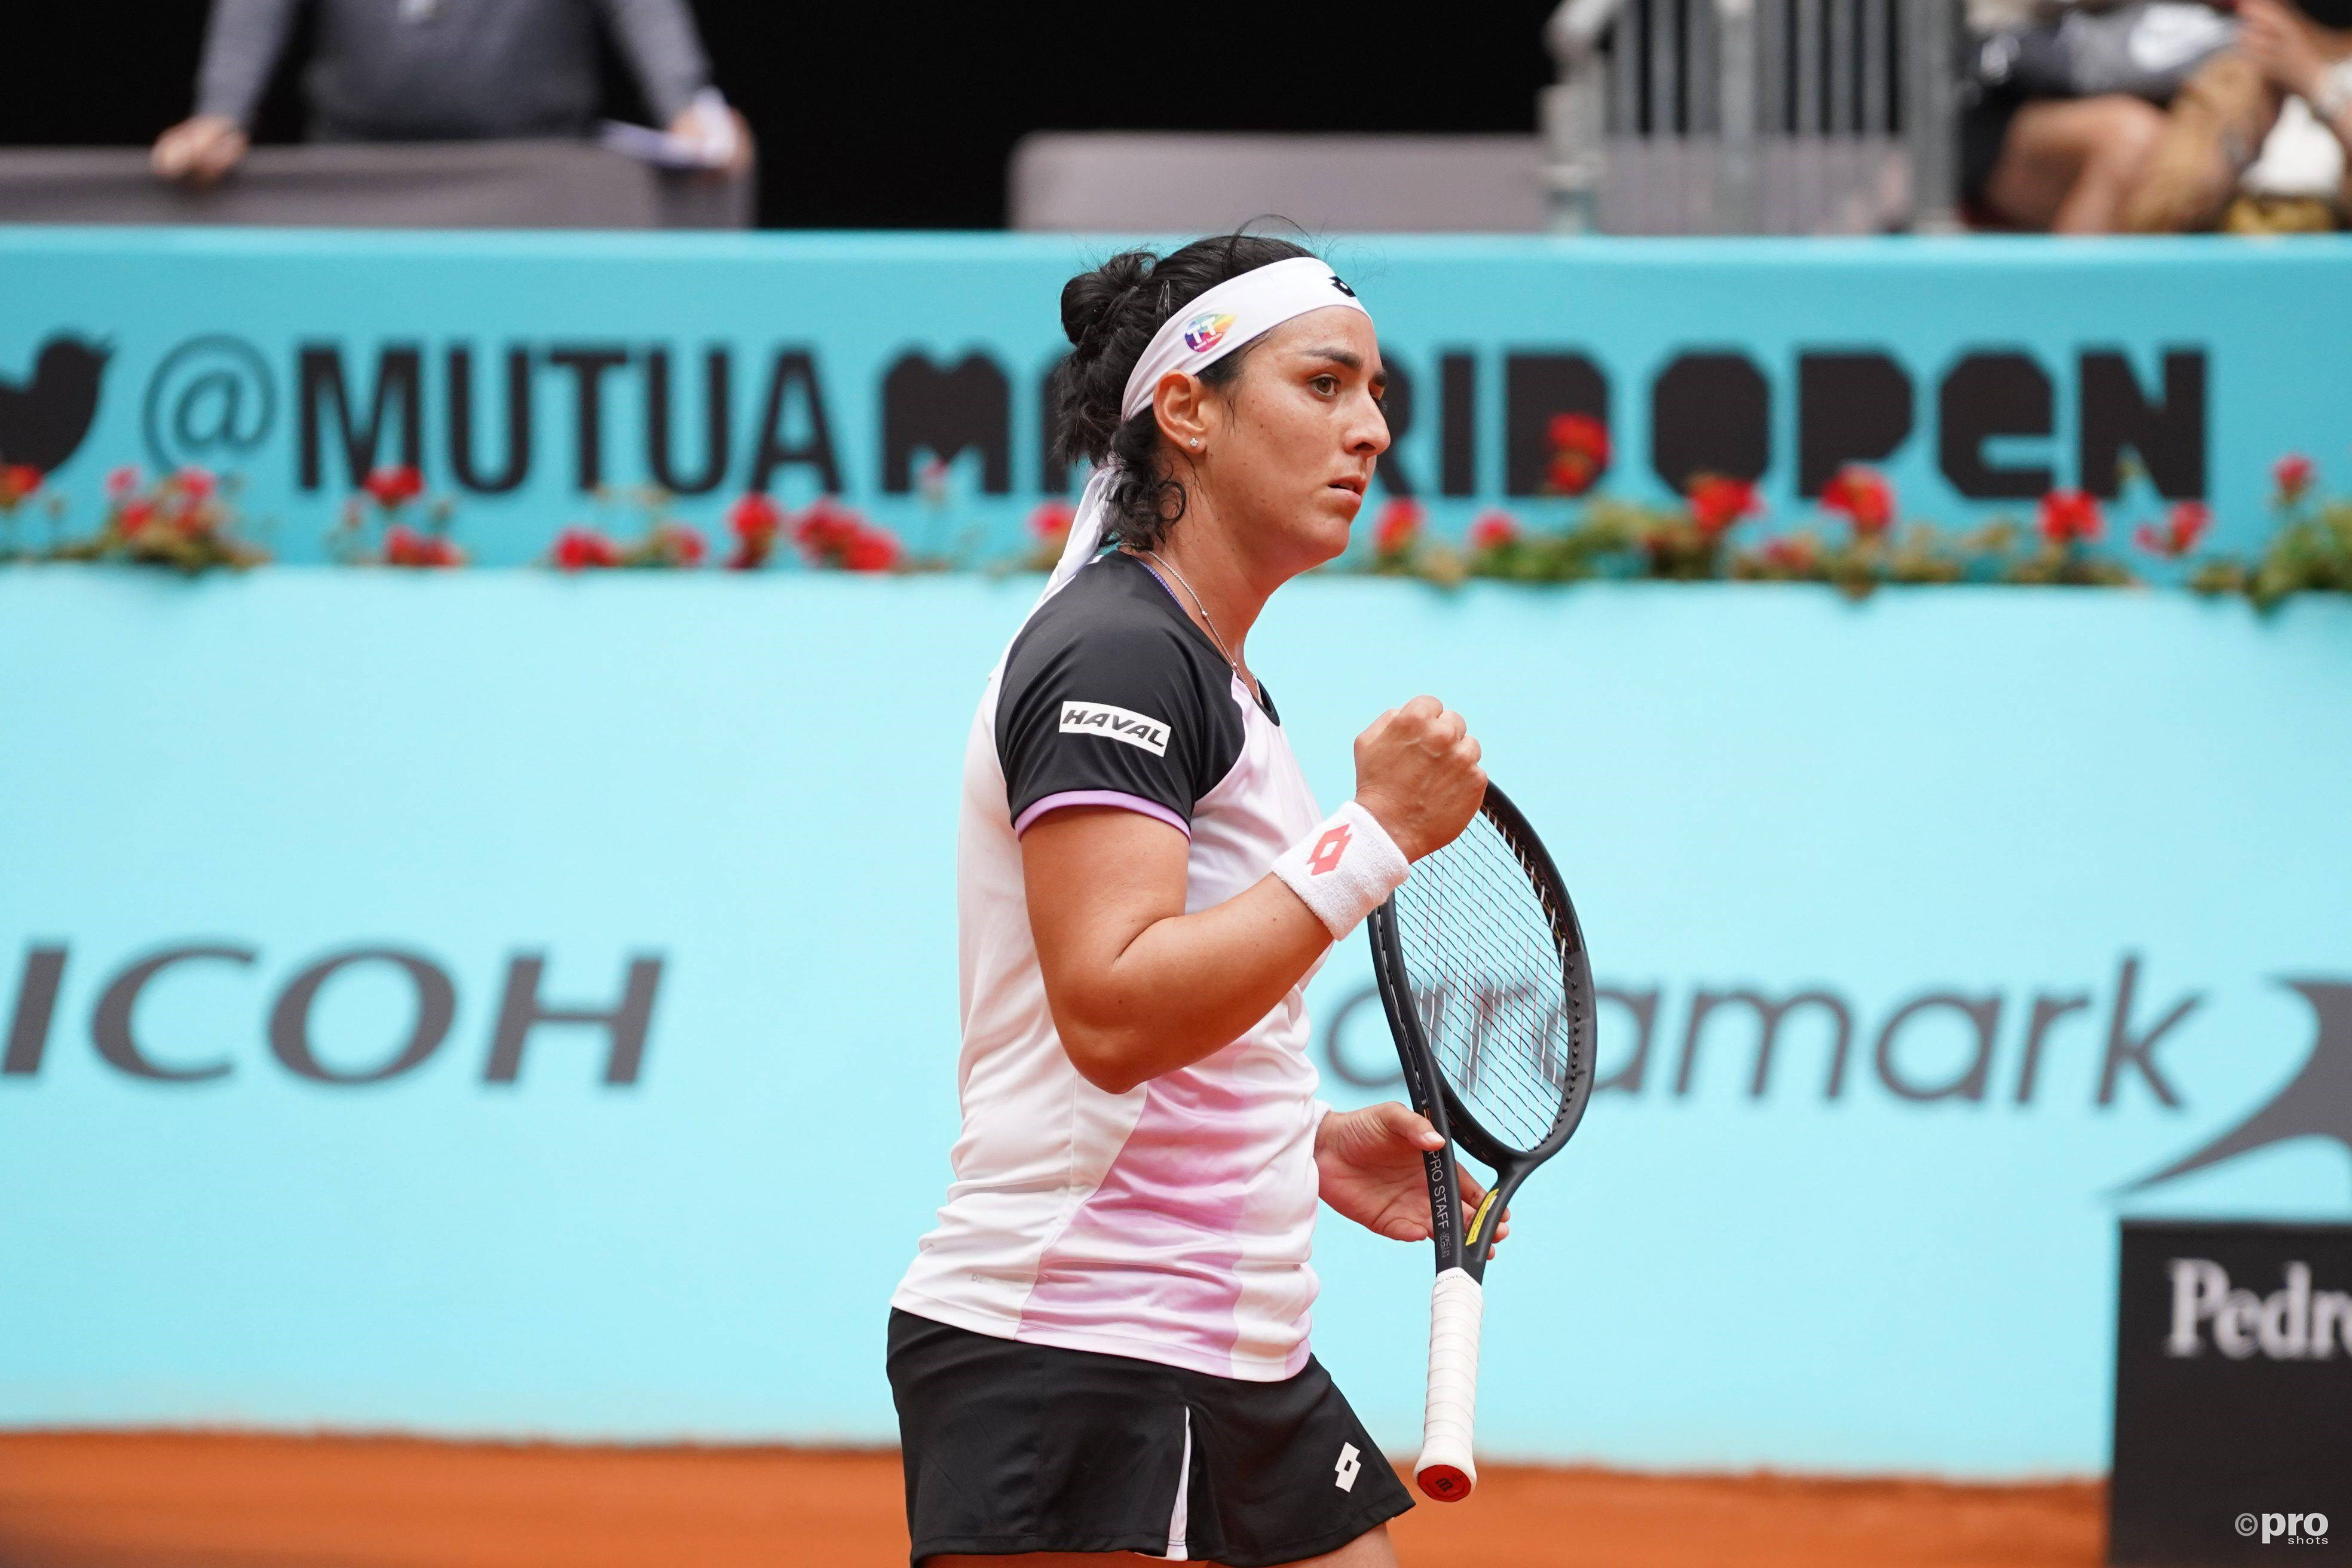 Ons Jabeur withdraws from Courmayeur Ladies Open, WTA Finals qualification in question